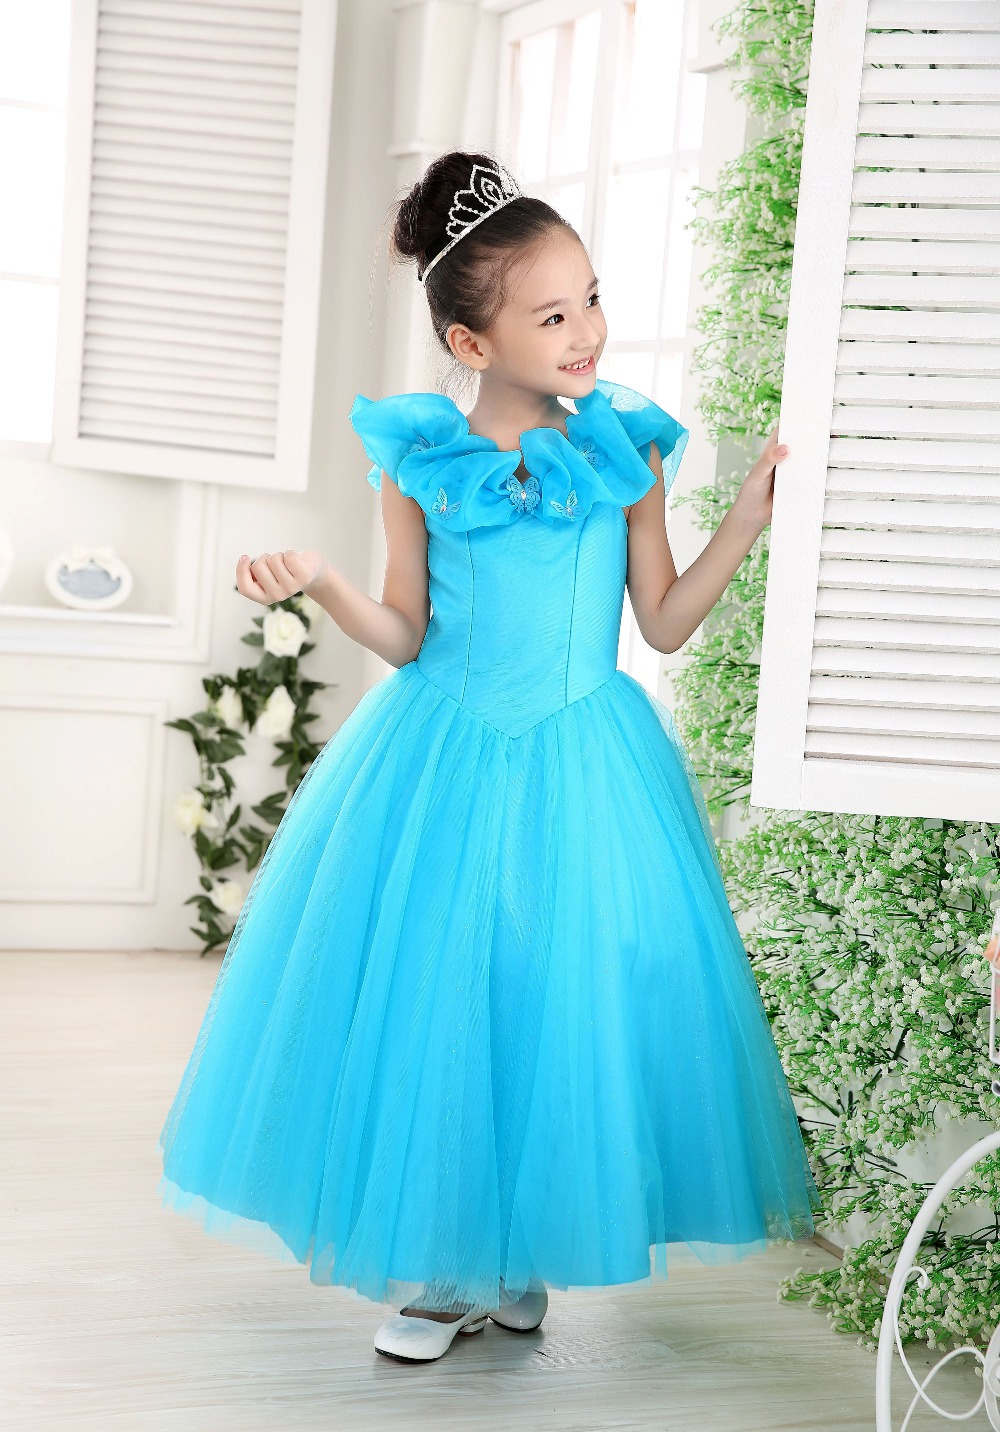 Colorful Fancy Dress For Party Embellishment - All Wedding Dresses ...